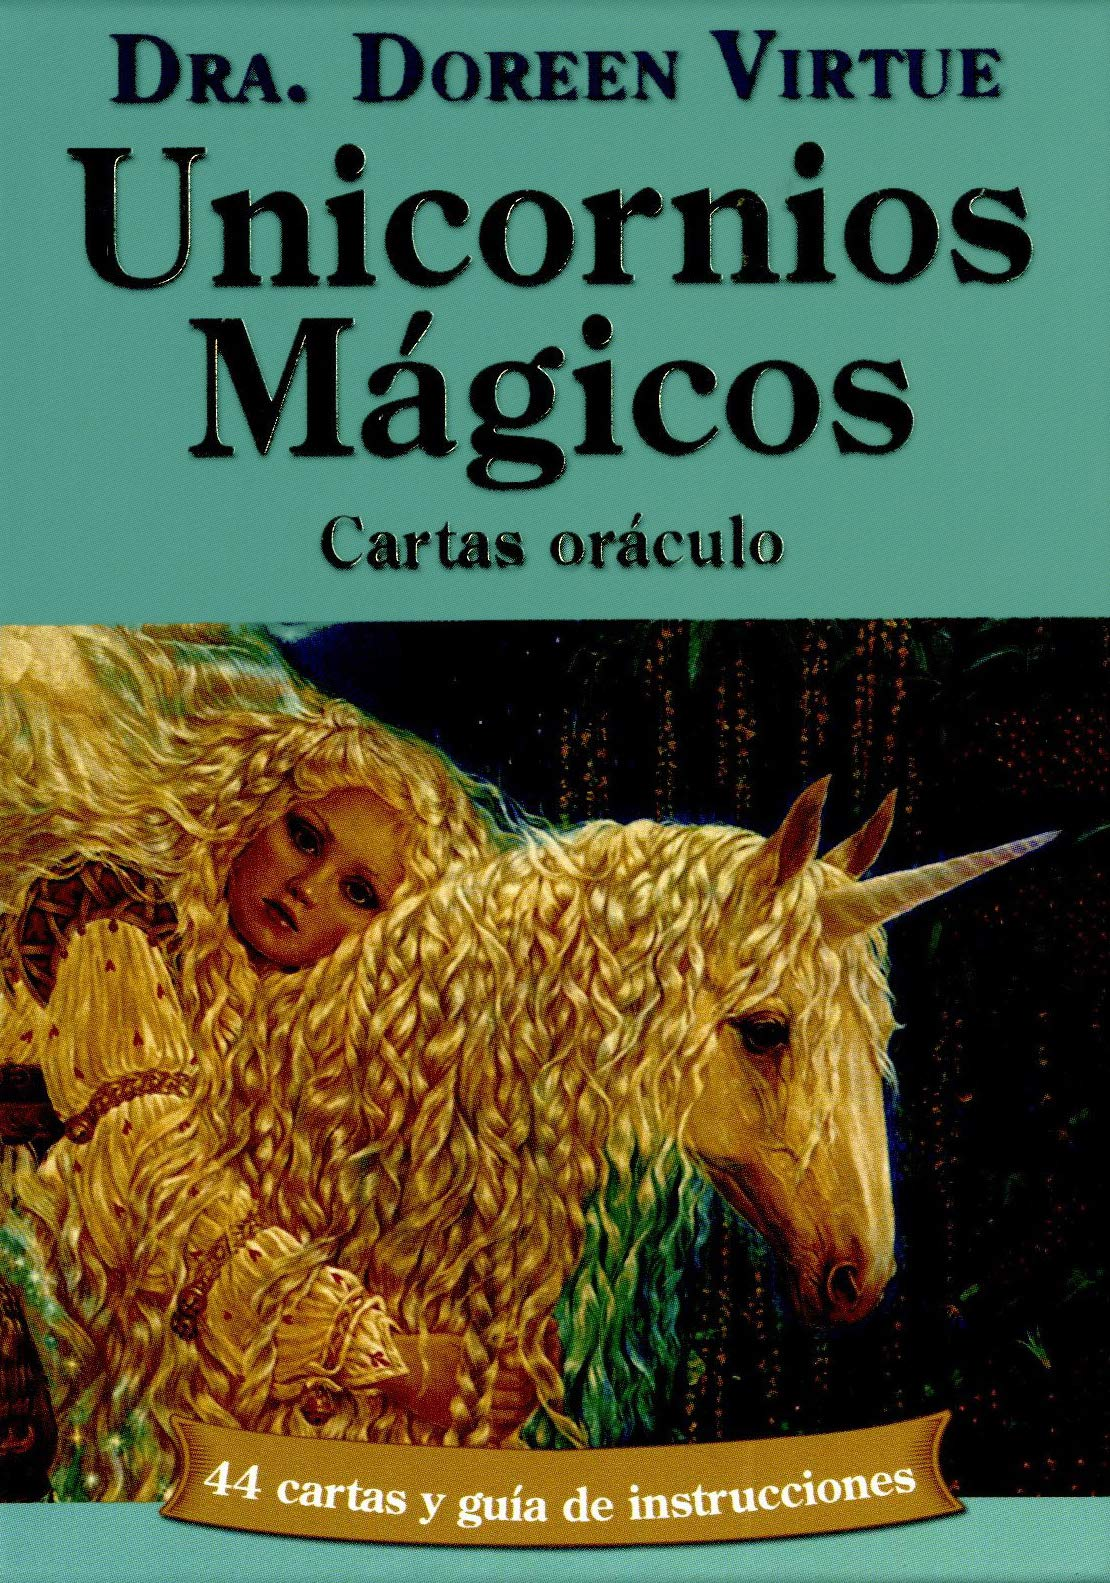 Unicornios mágicos: Cartas oráculo: Amazon.es: Doreen Virtue ...